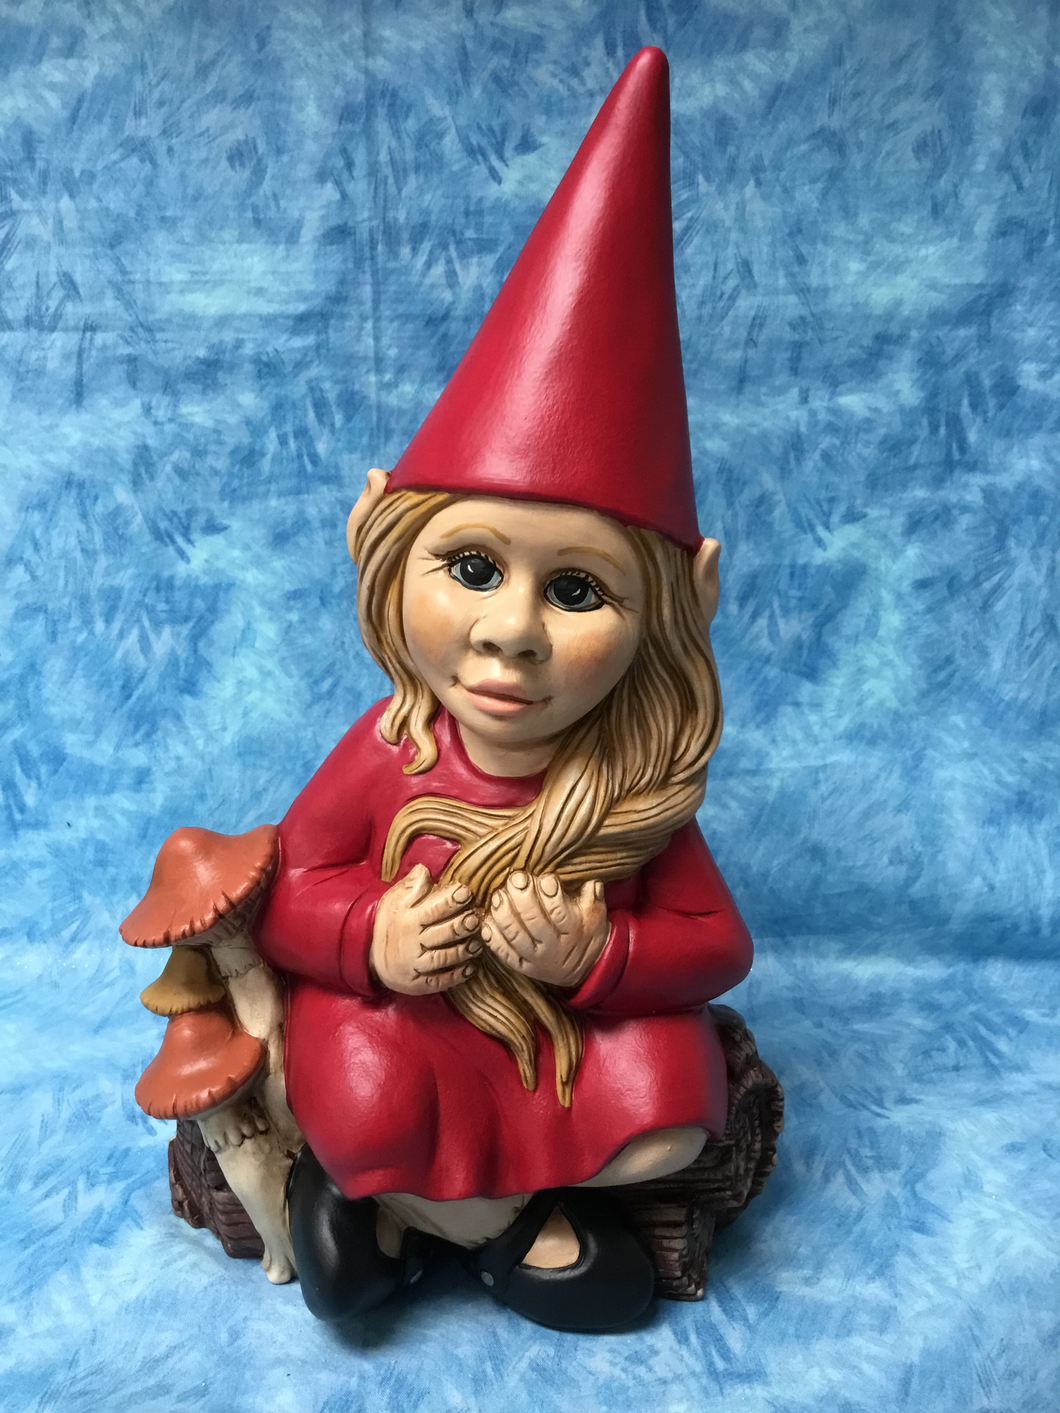 Friendly Girl Gnome Sitting with Mushrooms